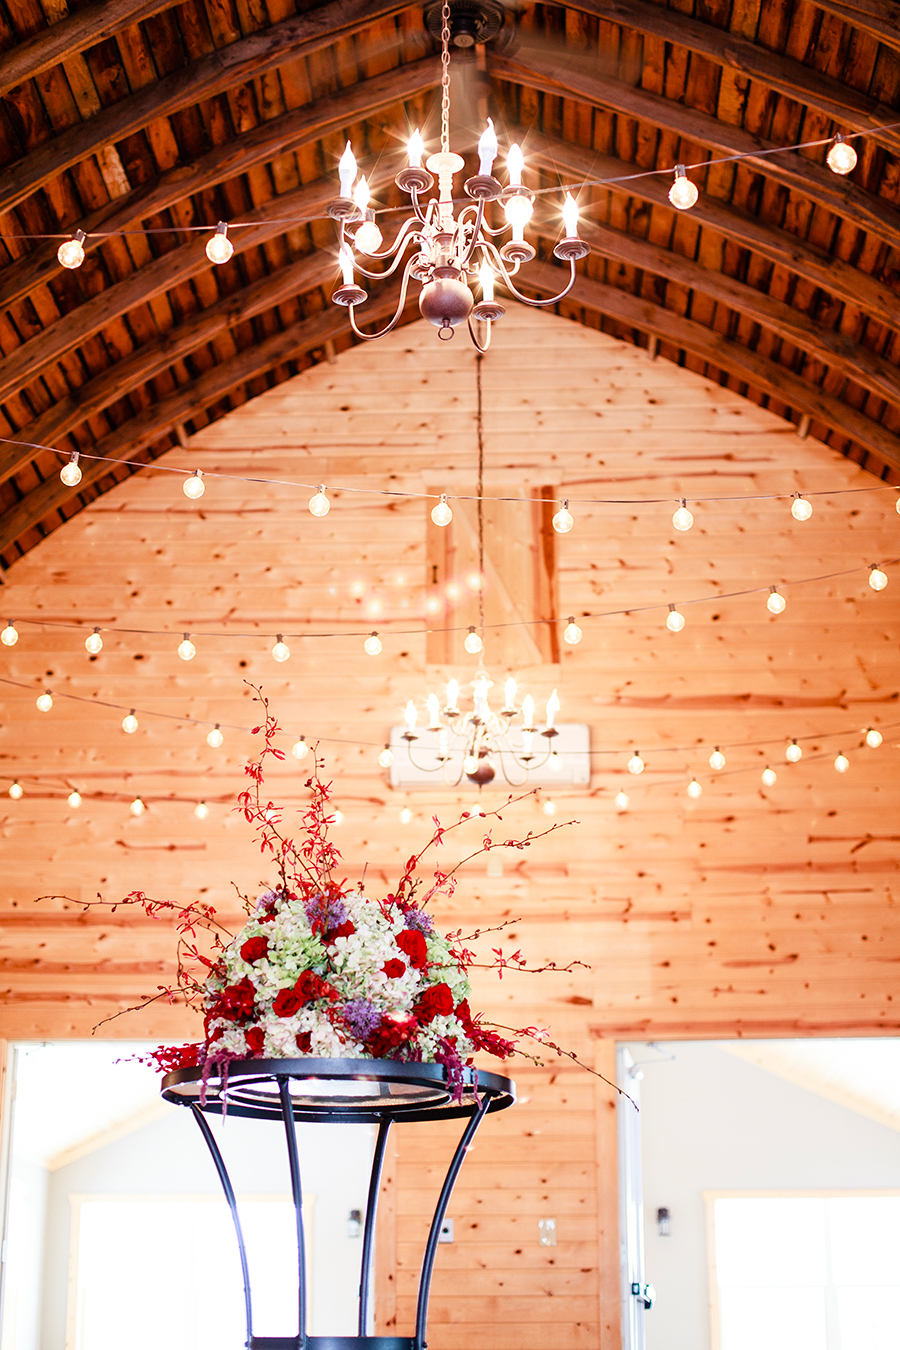 Floral bouquet and fairy lights at the Rustic Oaks, Moorhead Minnesota, USA